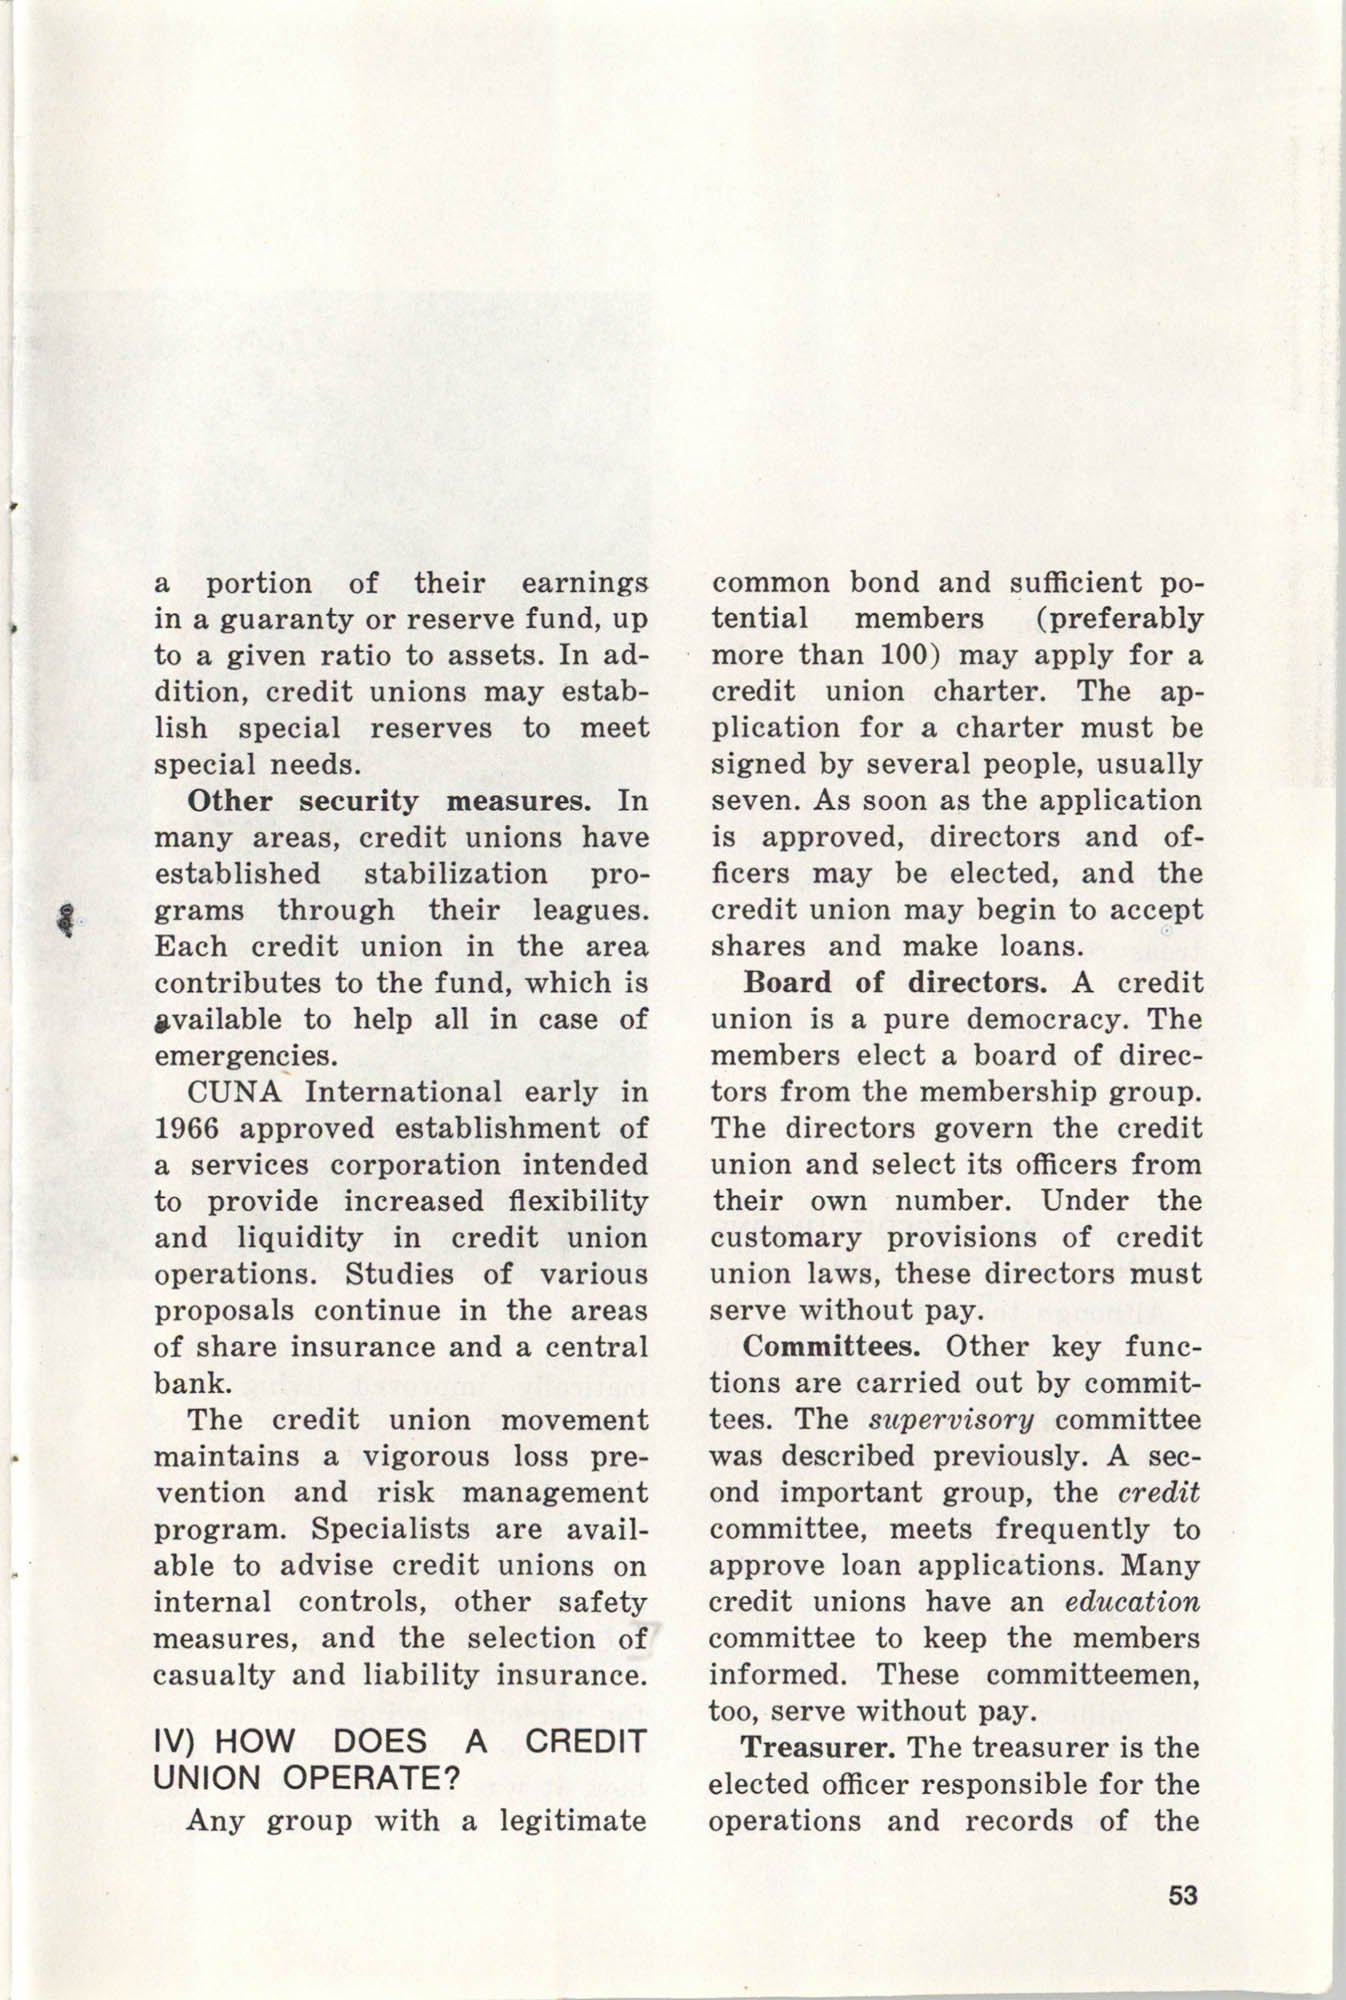 International Credit Union Yearbook, Page 53